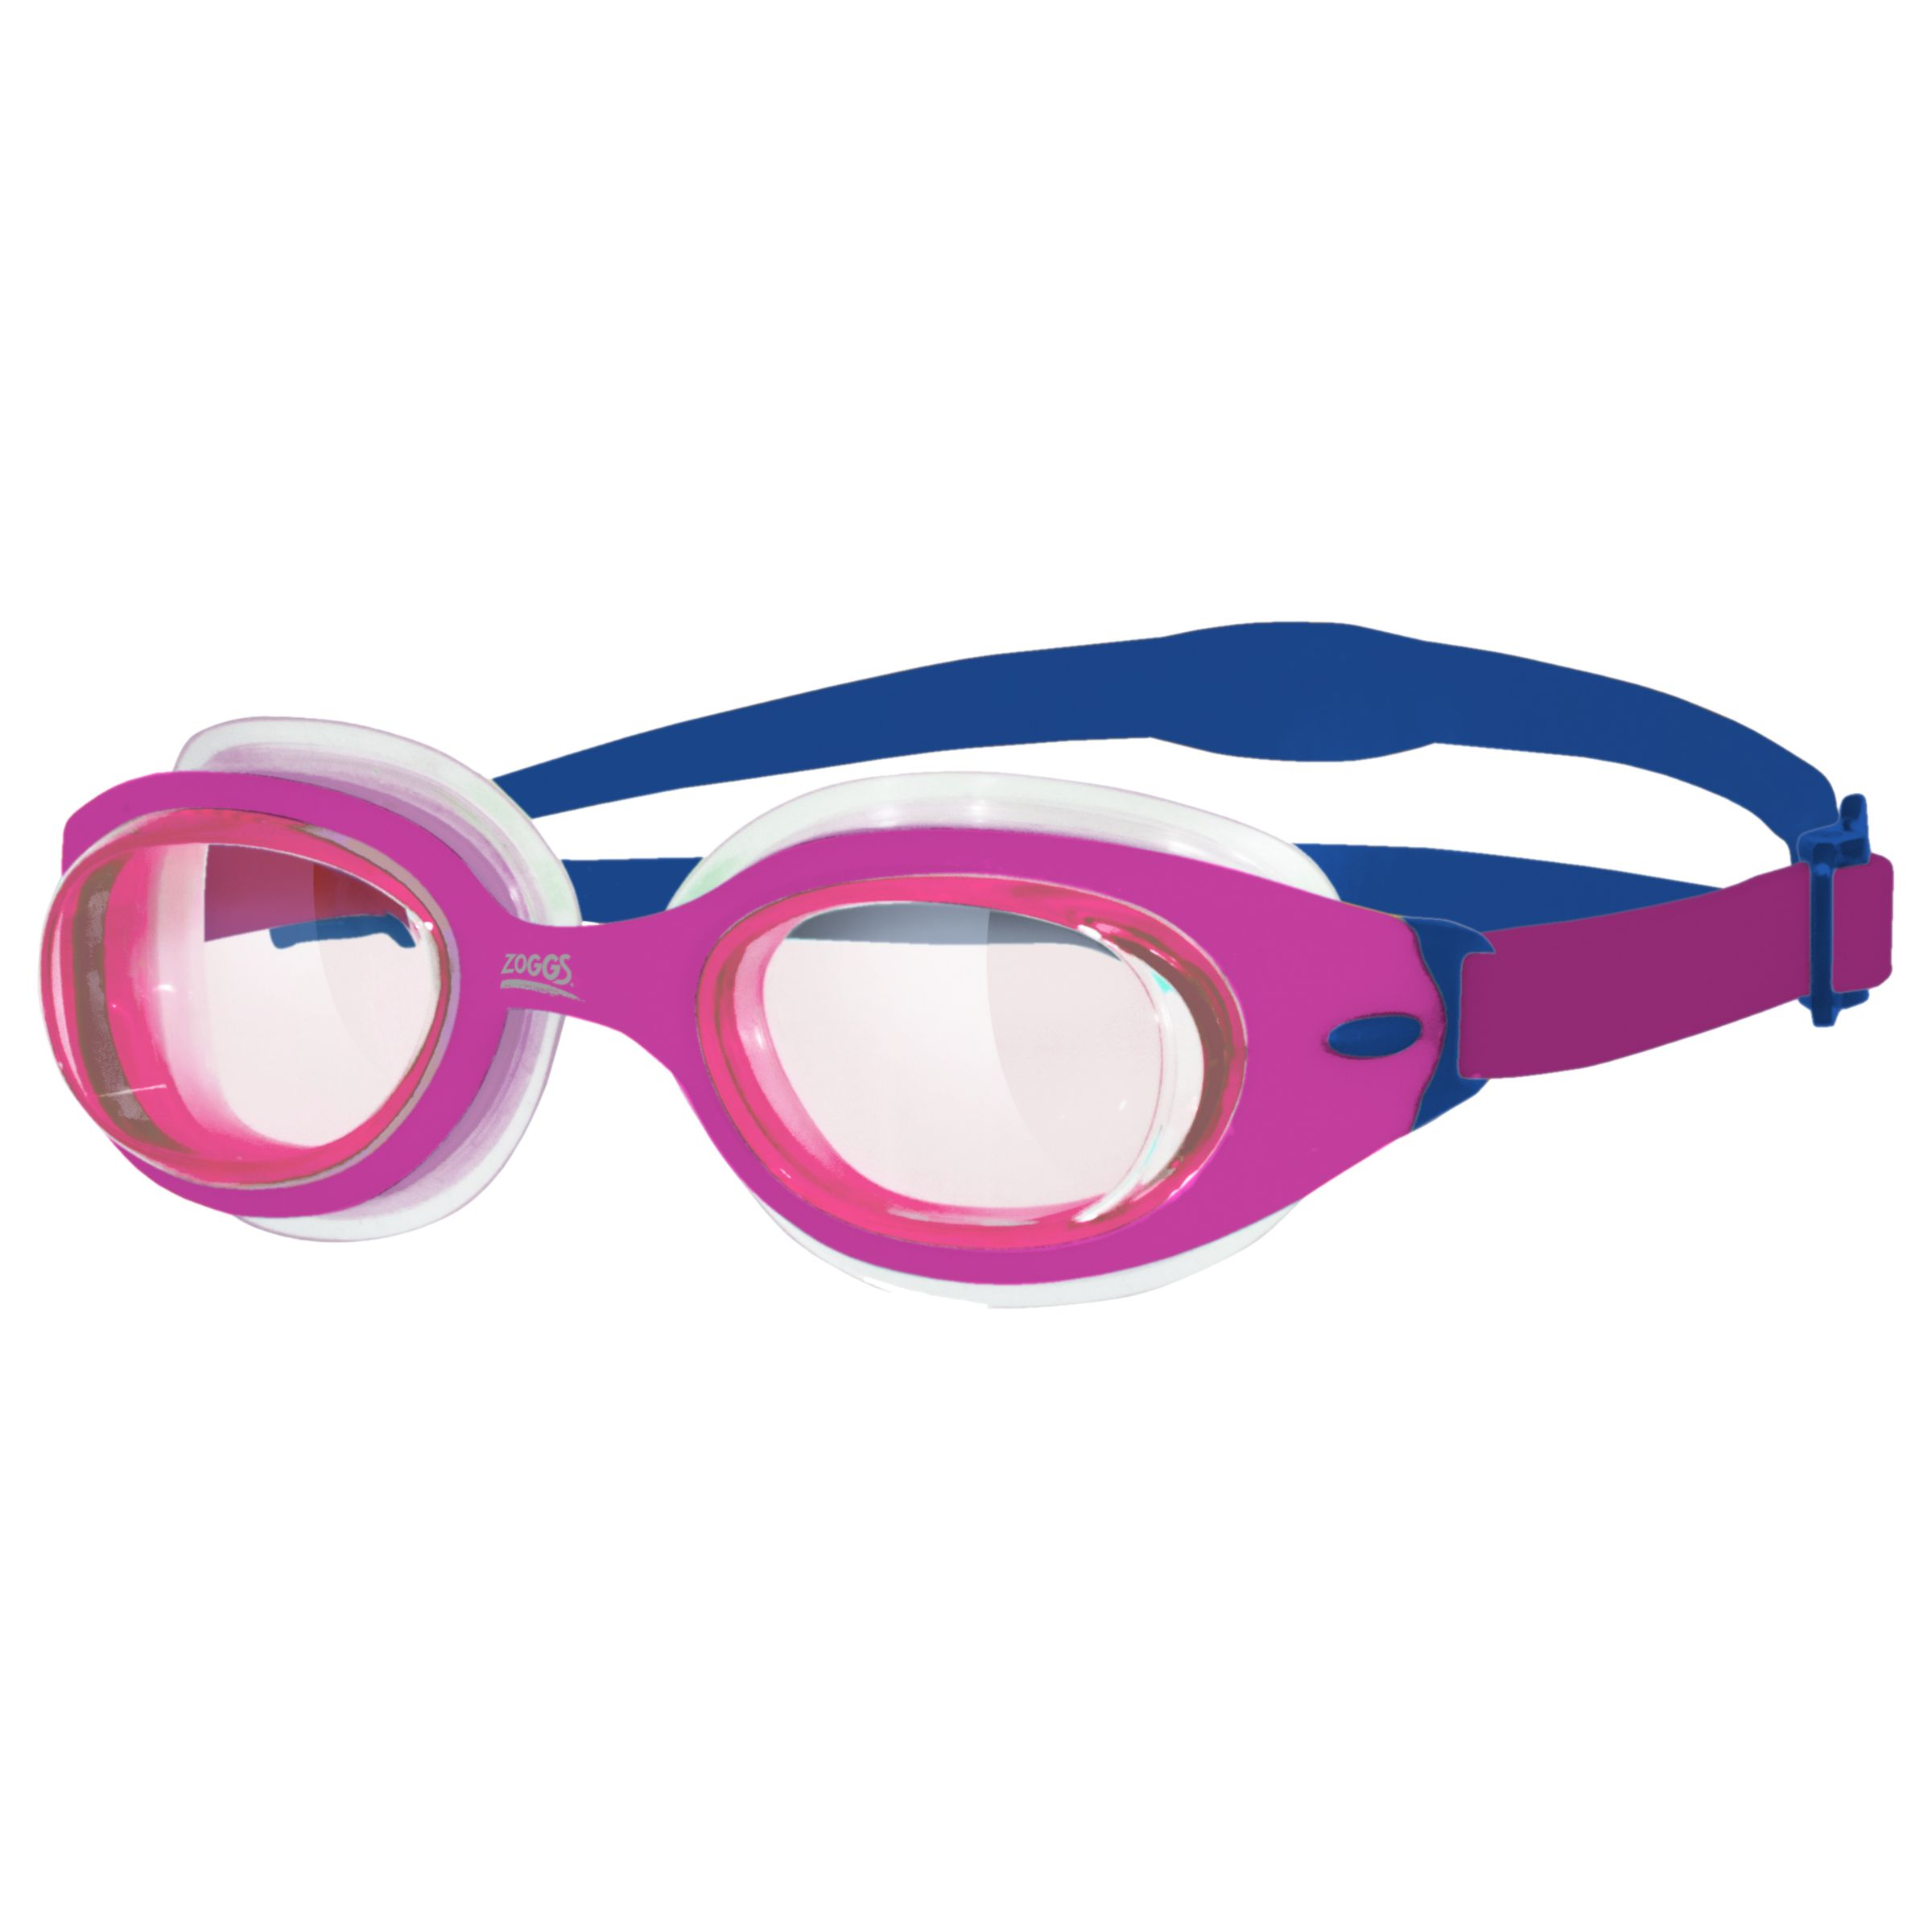 Zoggs Zoggs Sonic Air Junior Swimming Goggles, 6-14 years